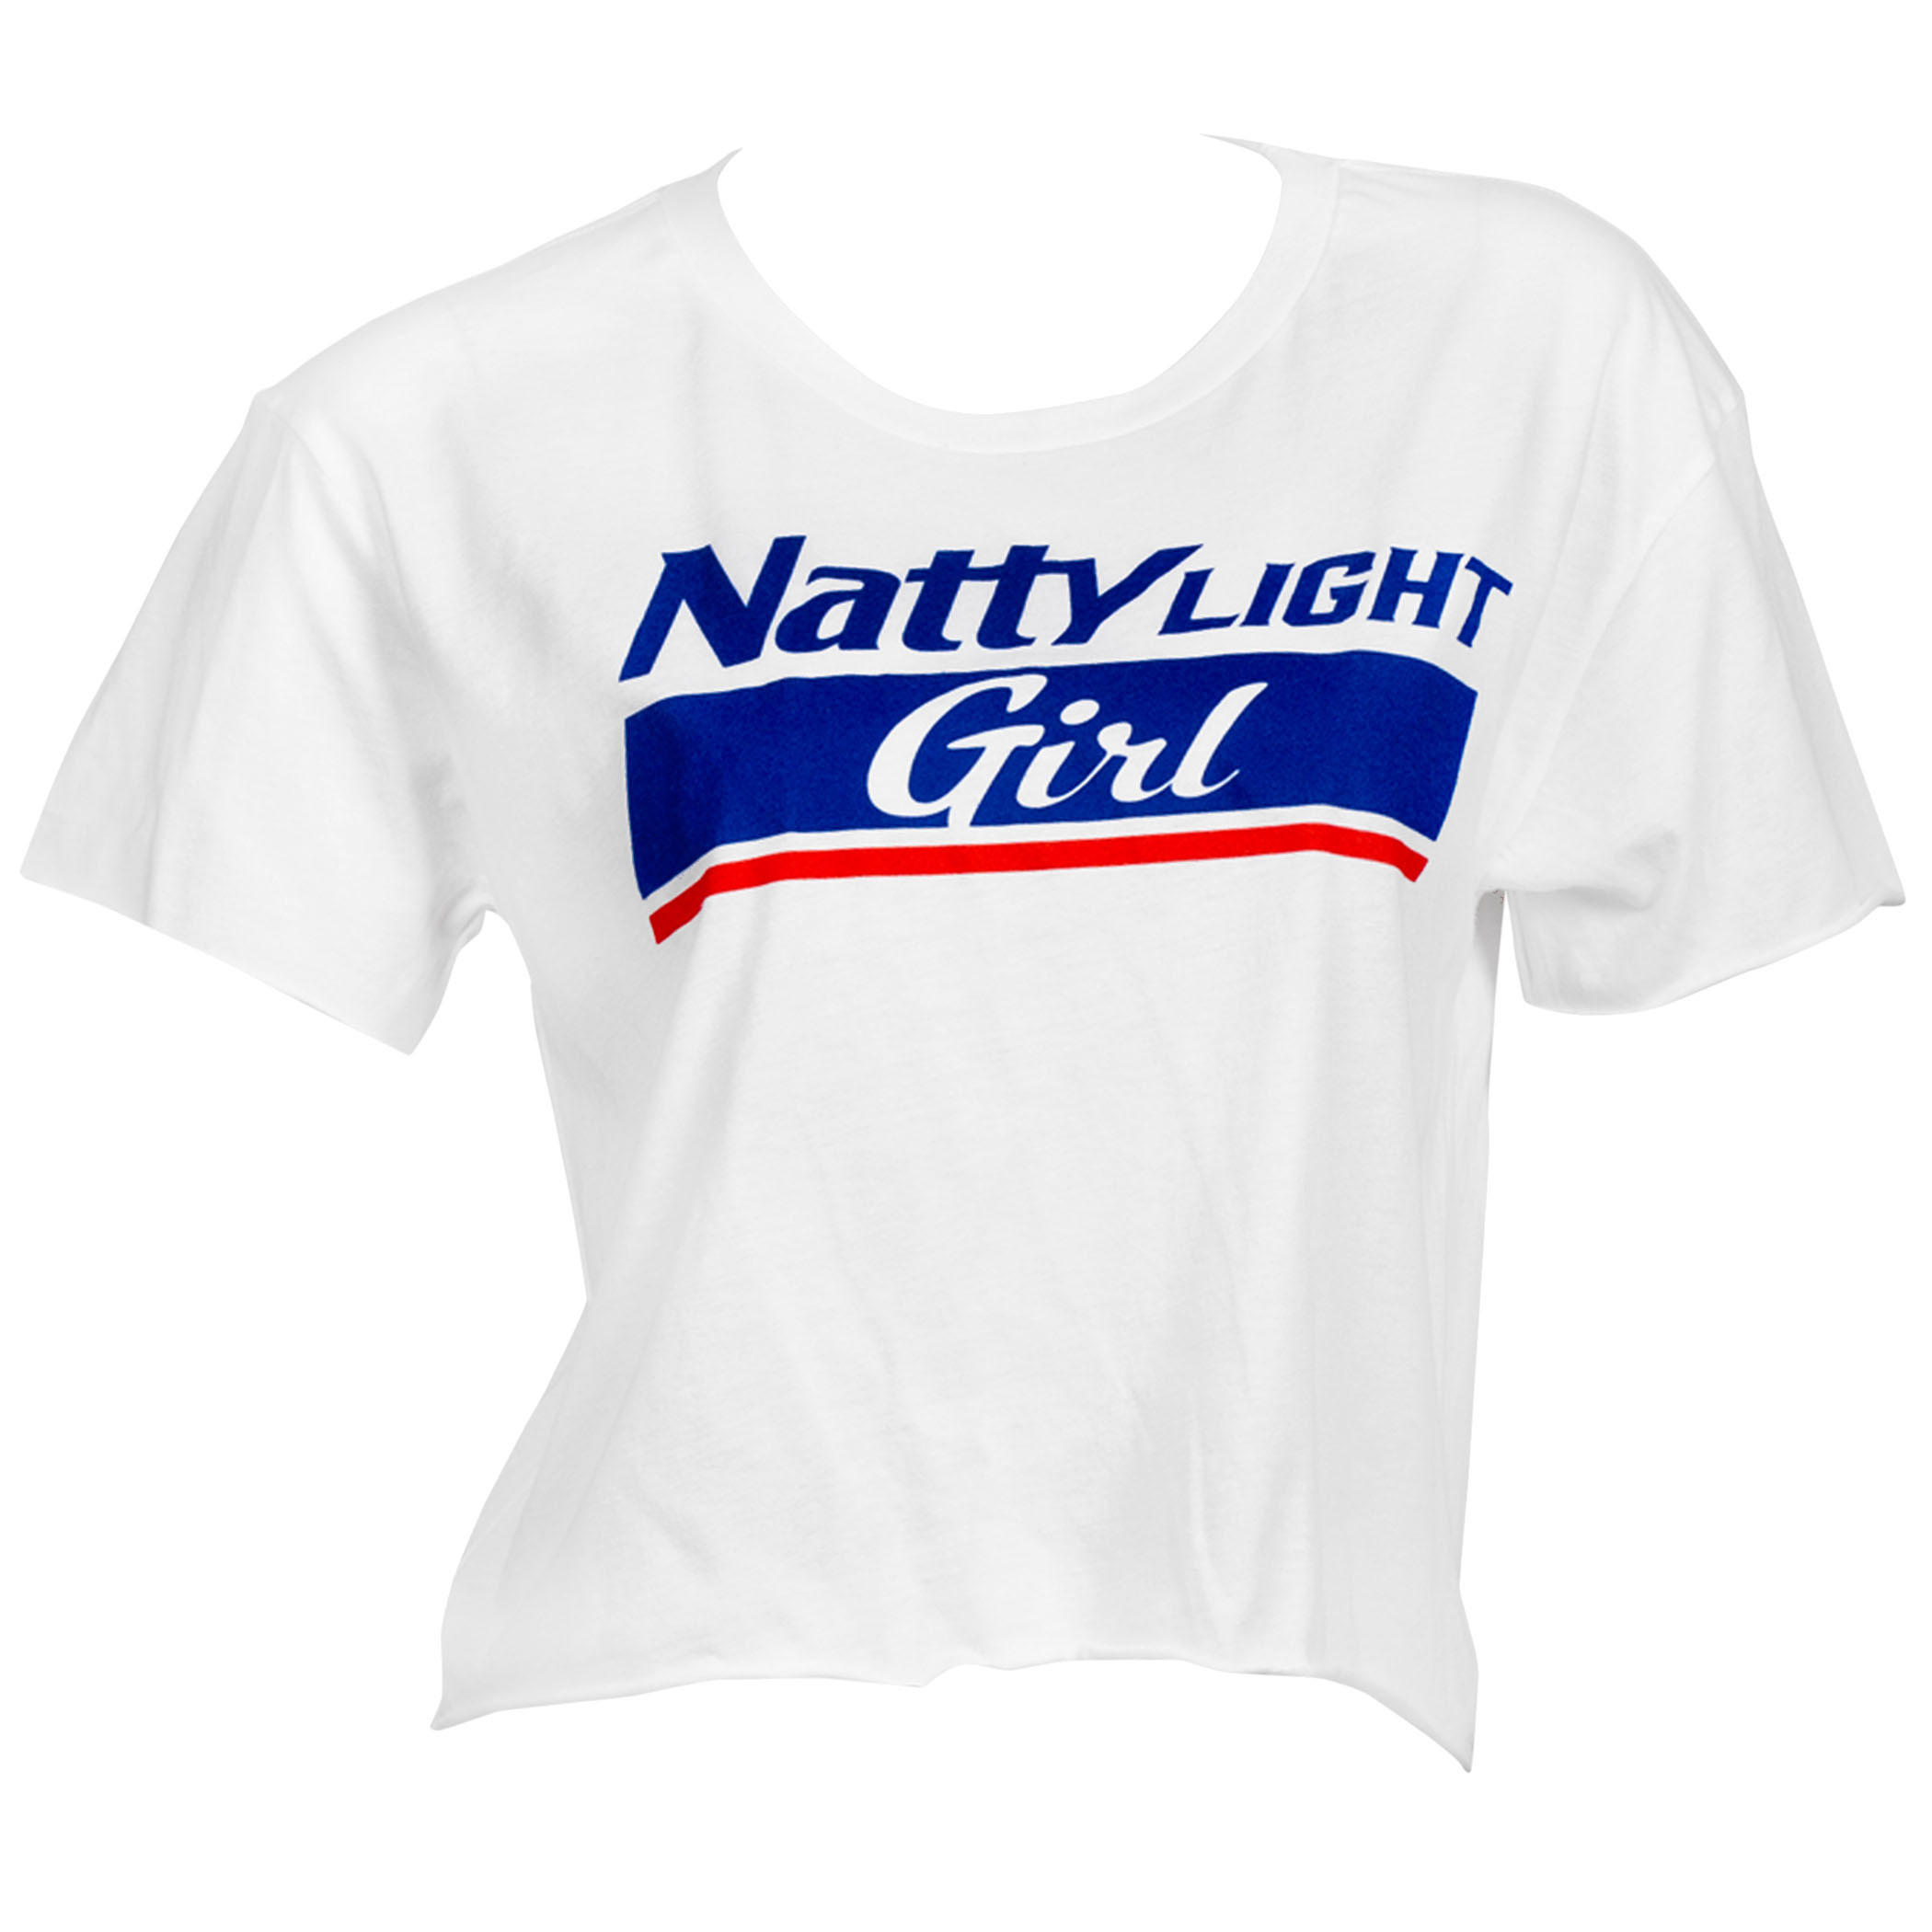 Natural Light Girl Women's Crop Top T-Shirt